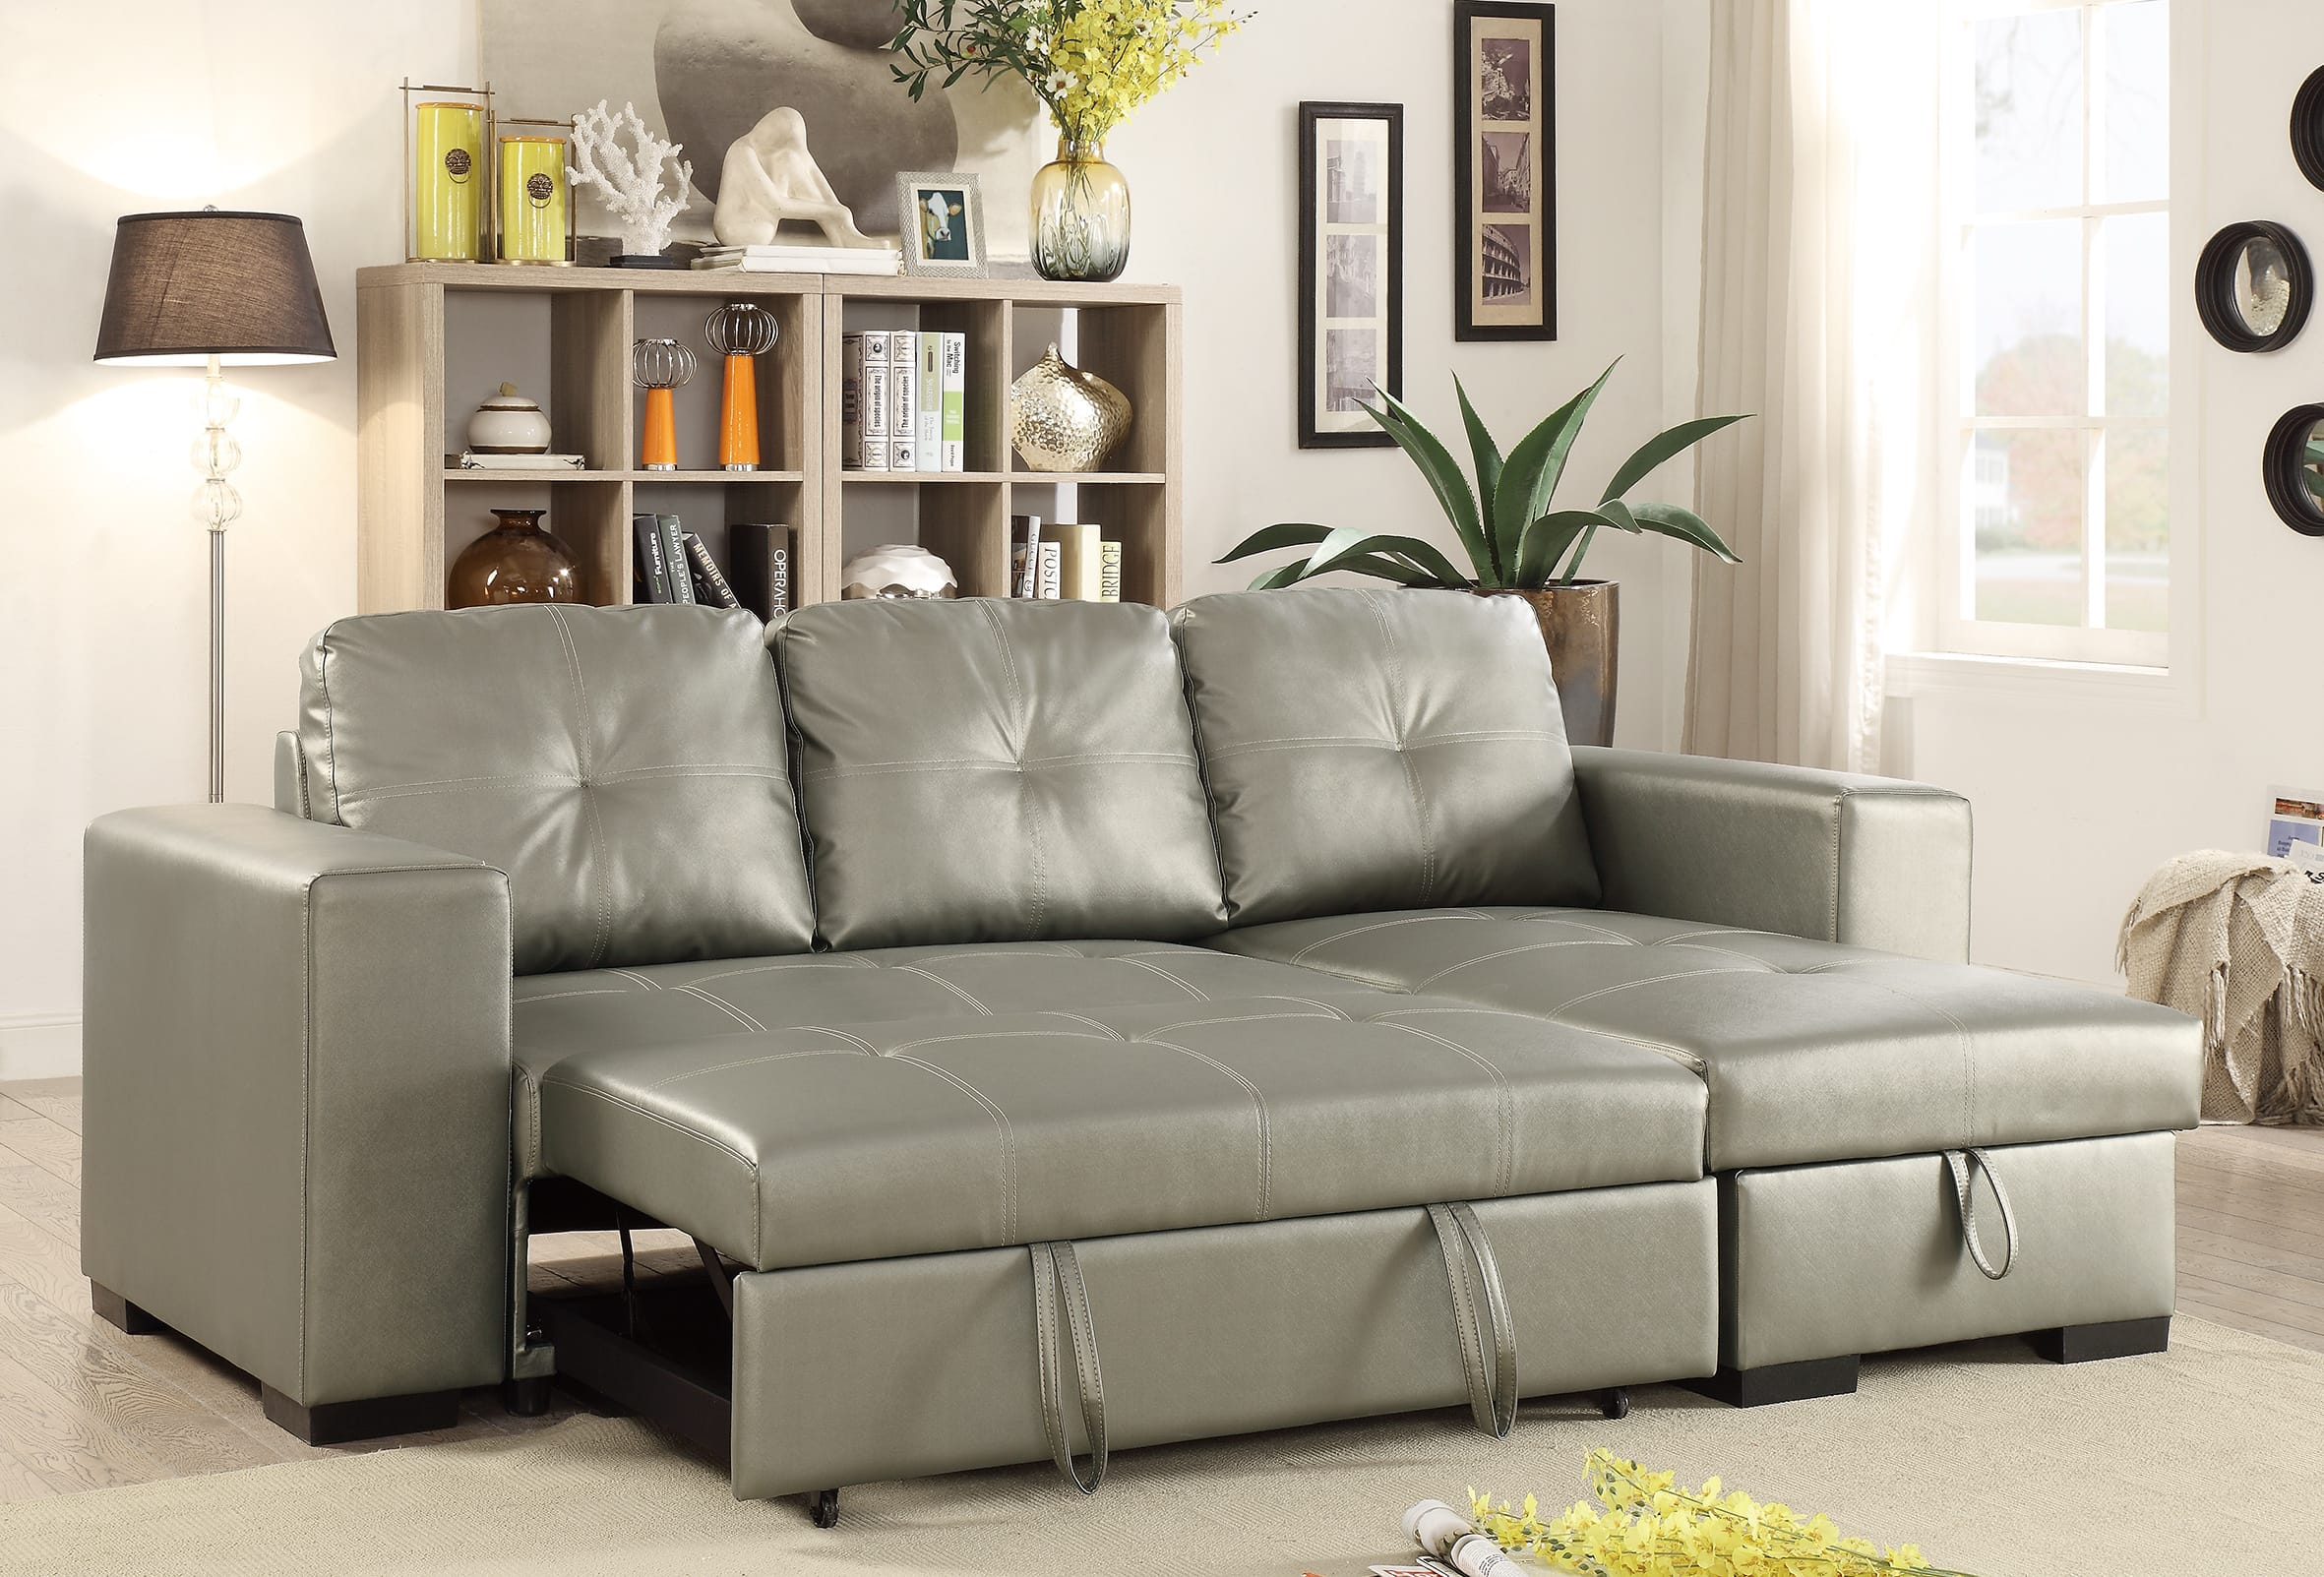 F6919 Silver Convertible Sectional Sofa Set by Poundex